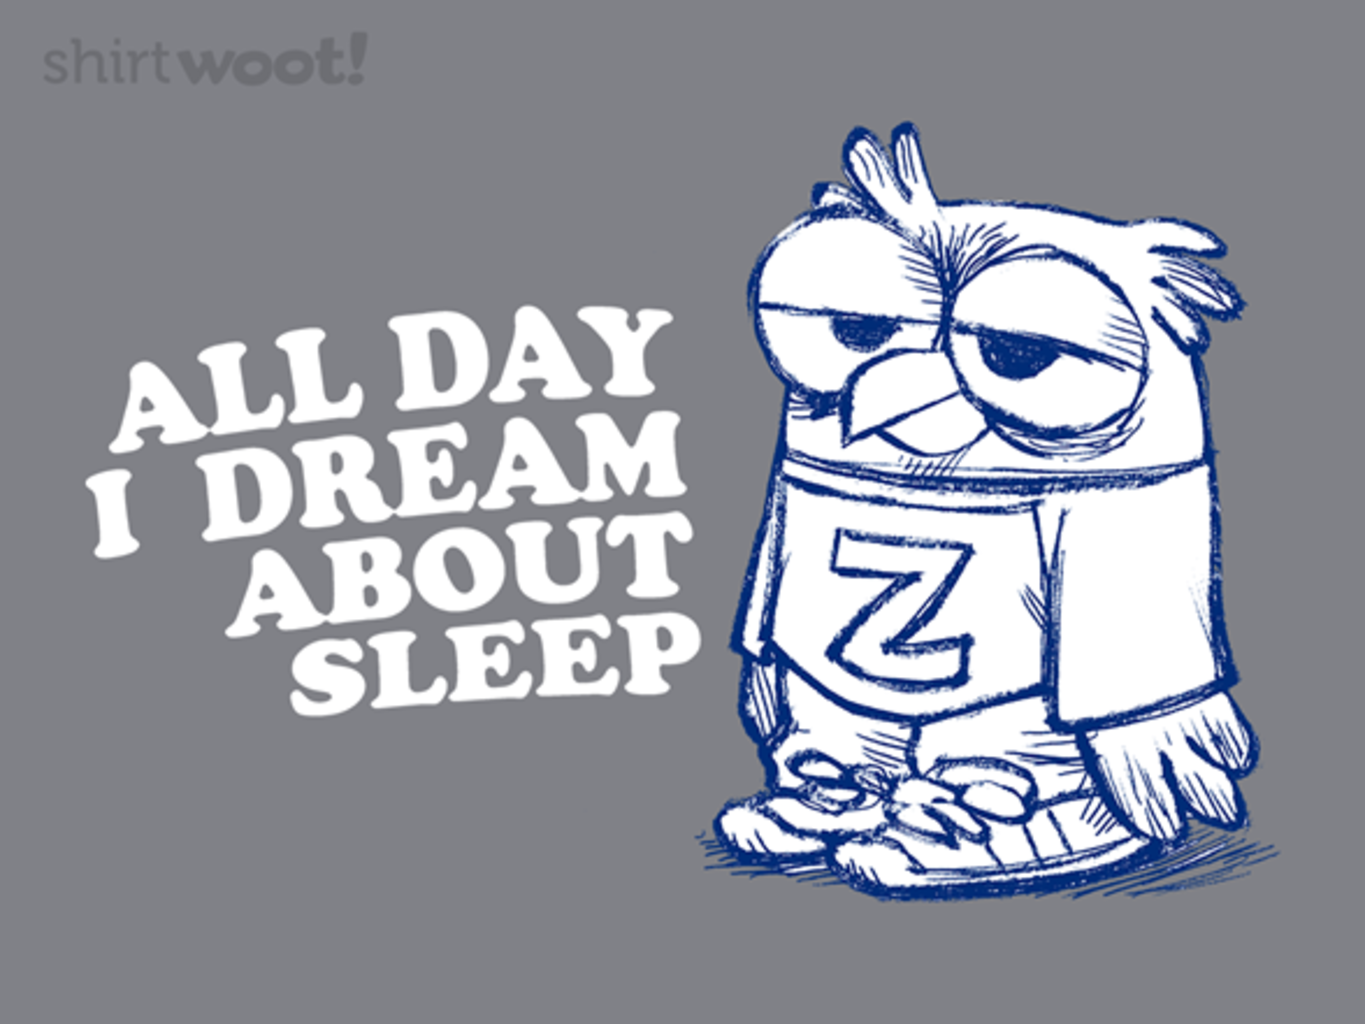 Woot!: All Day I Dream About Sleep